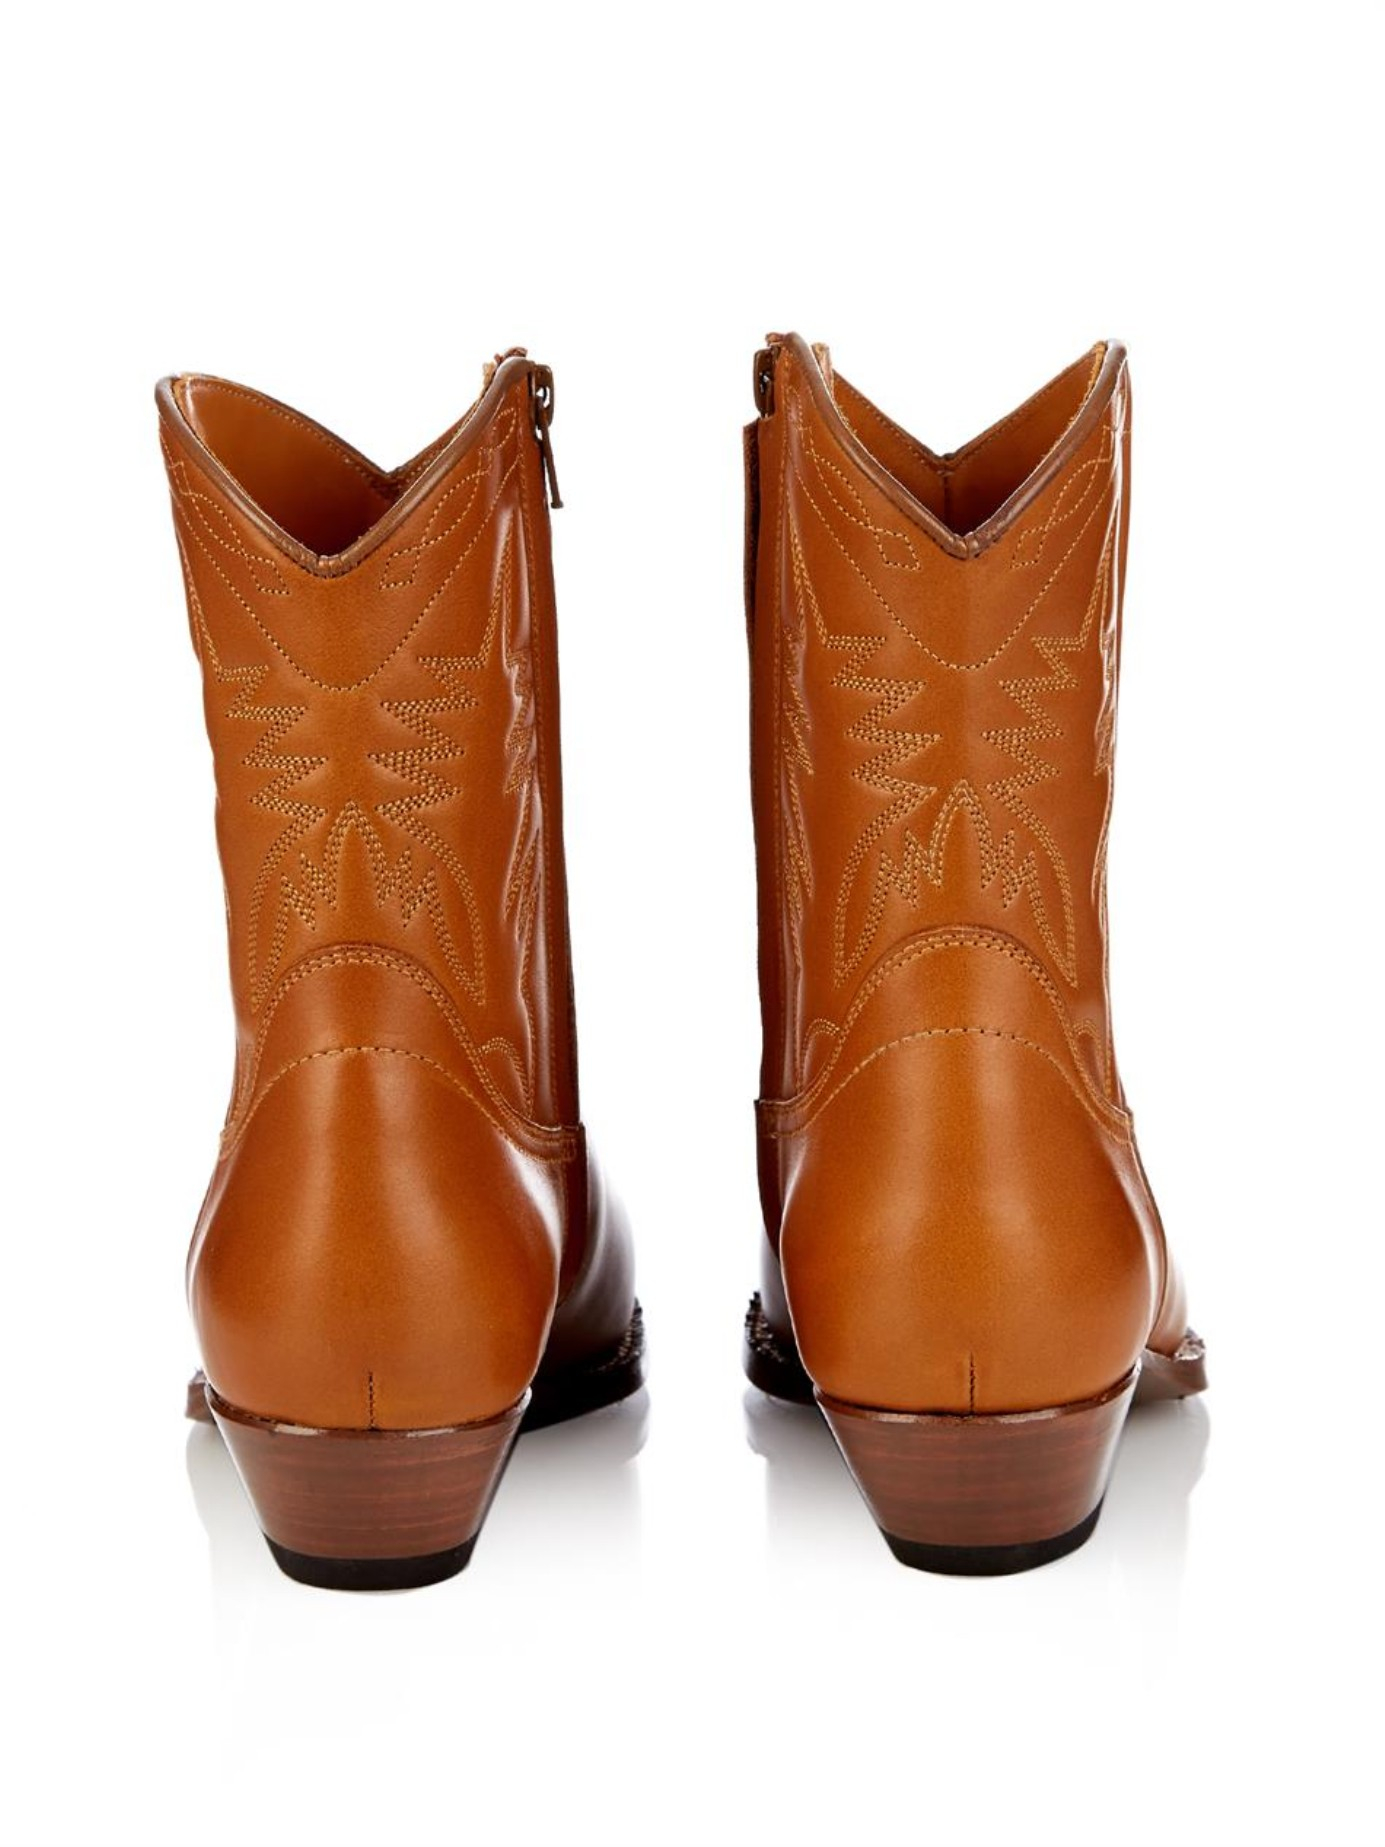 Lyst - Saint Laurent Santiag Western Ankle Boots in Brown cf08b845a